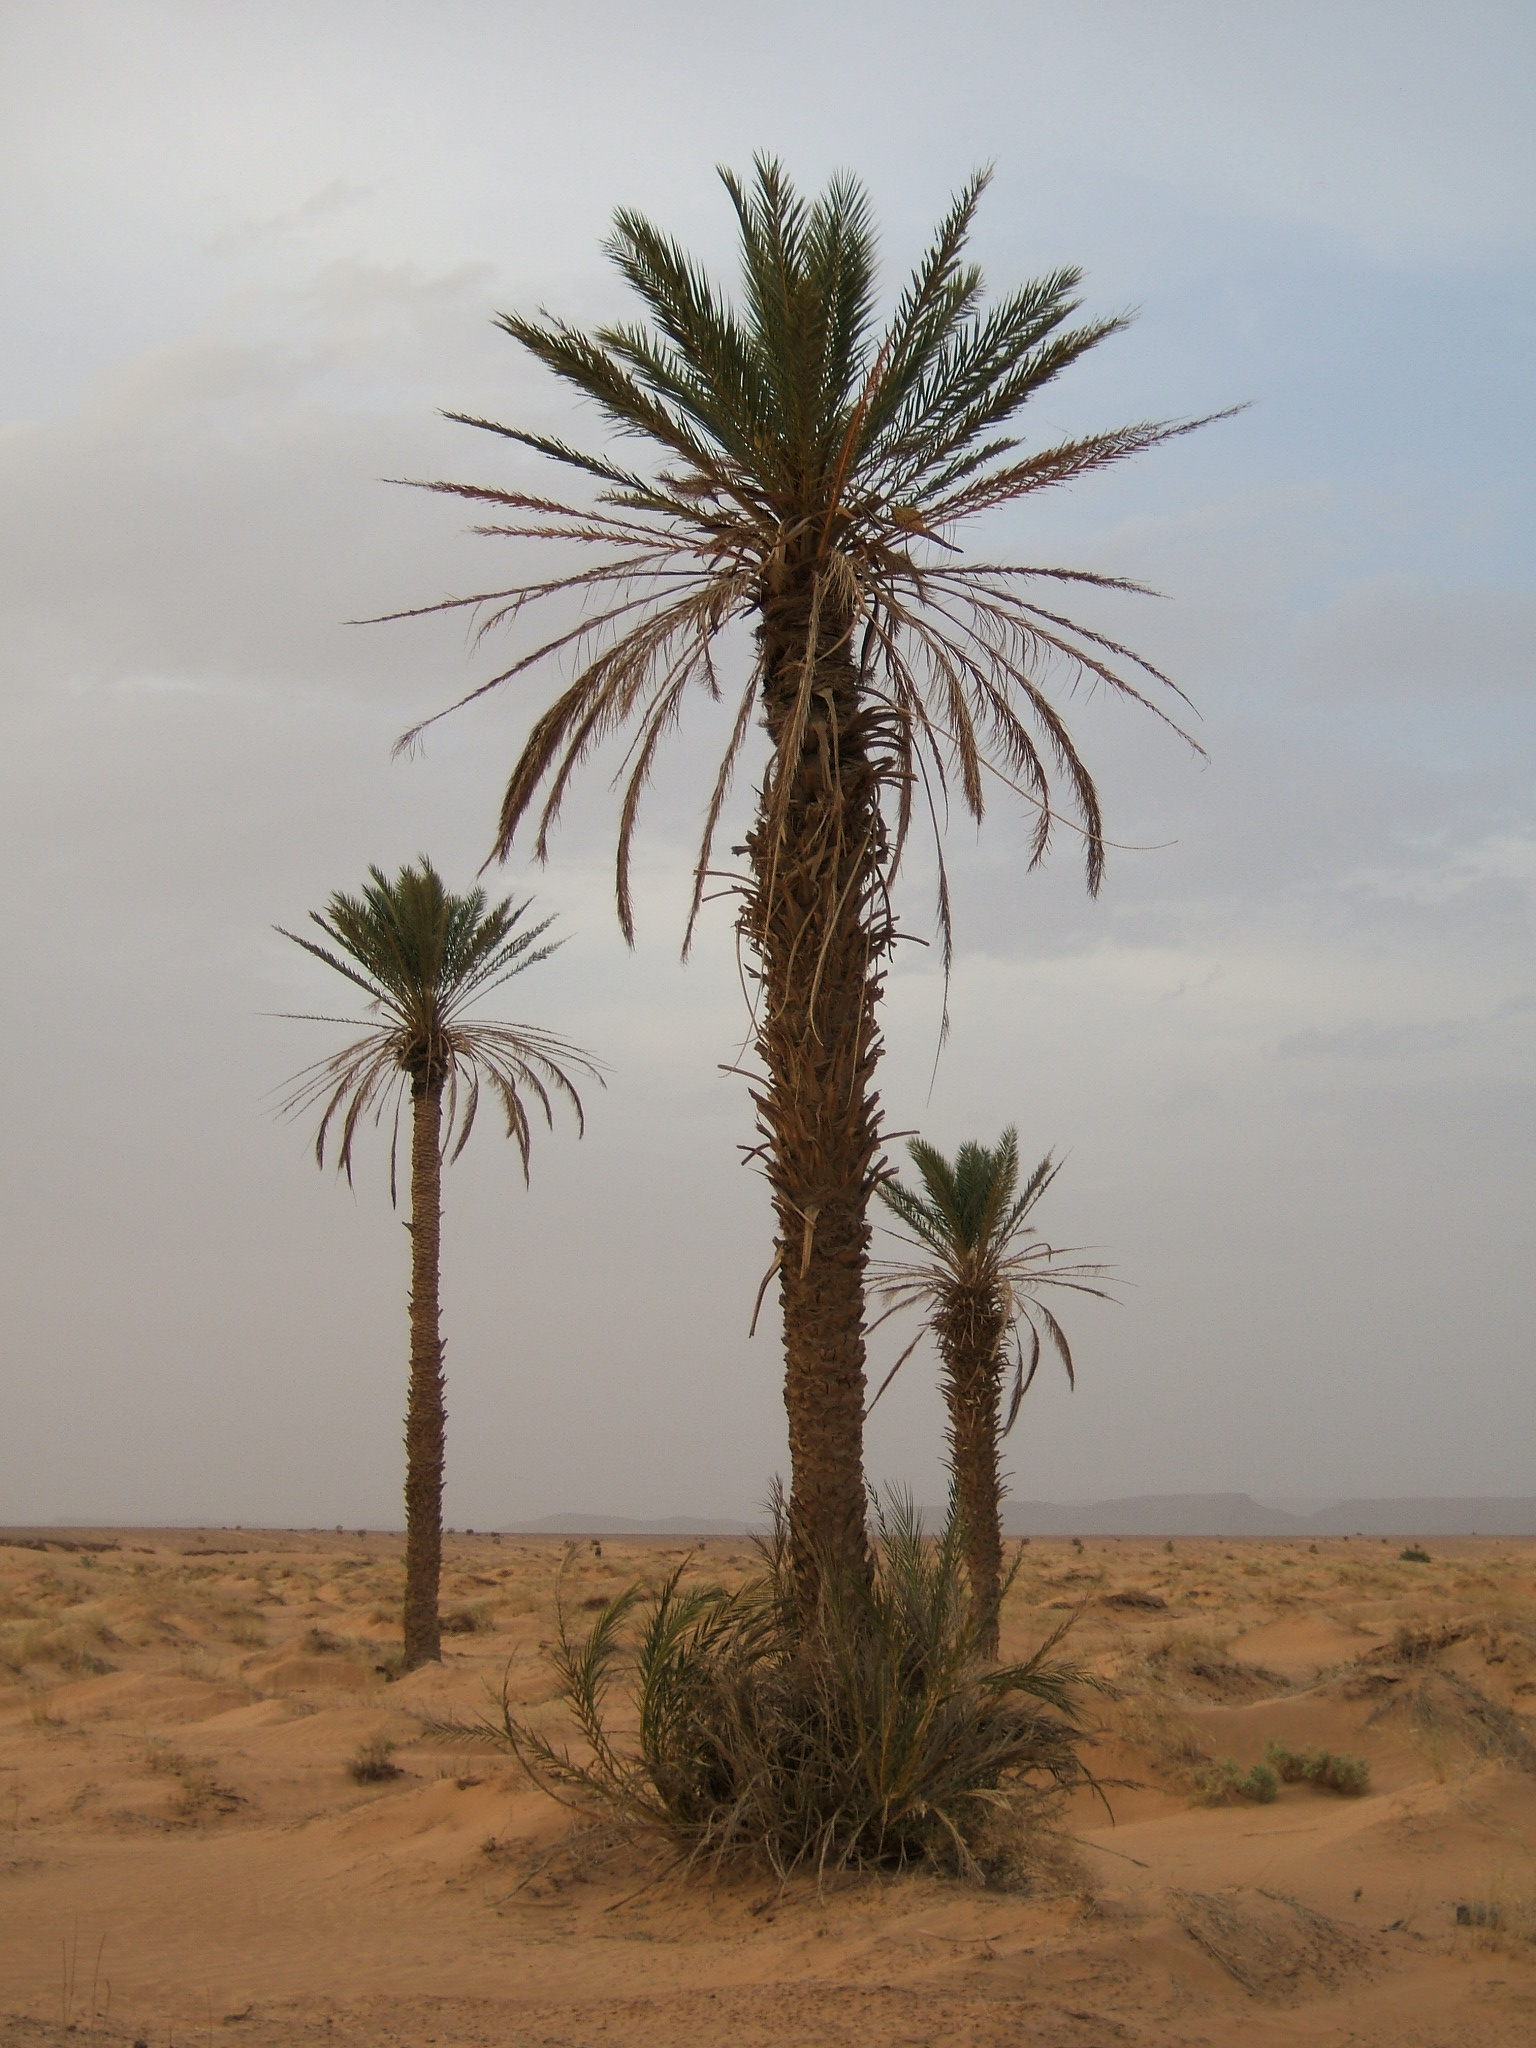 The Date Palm, Phoenix dactylifera